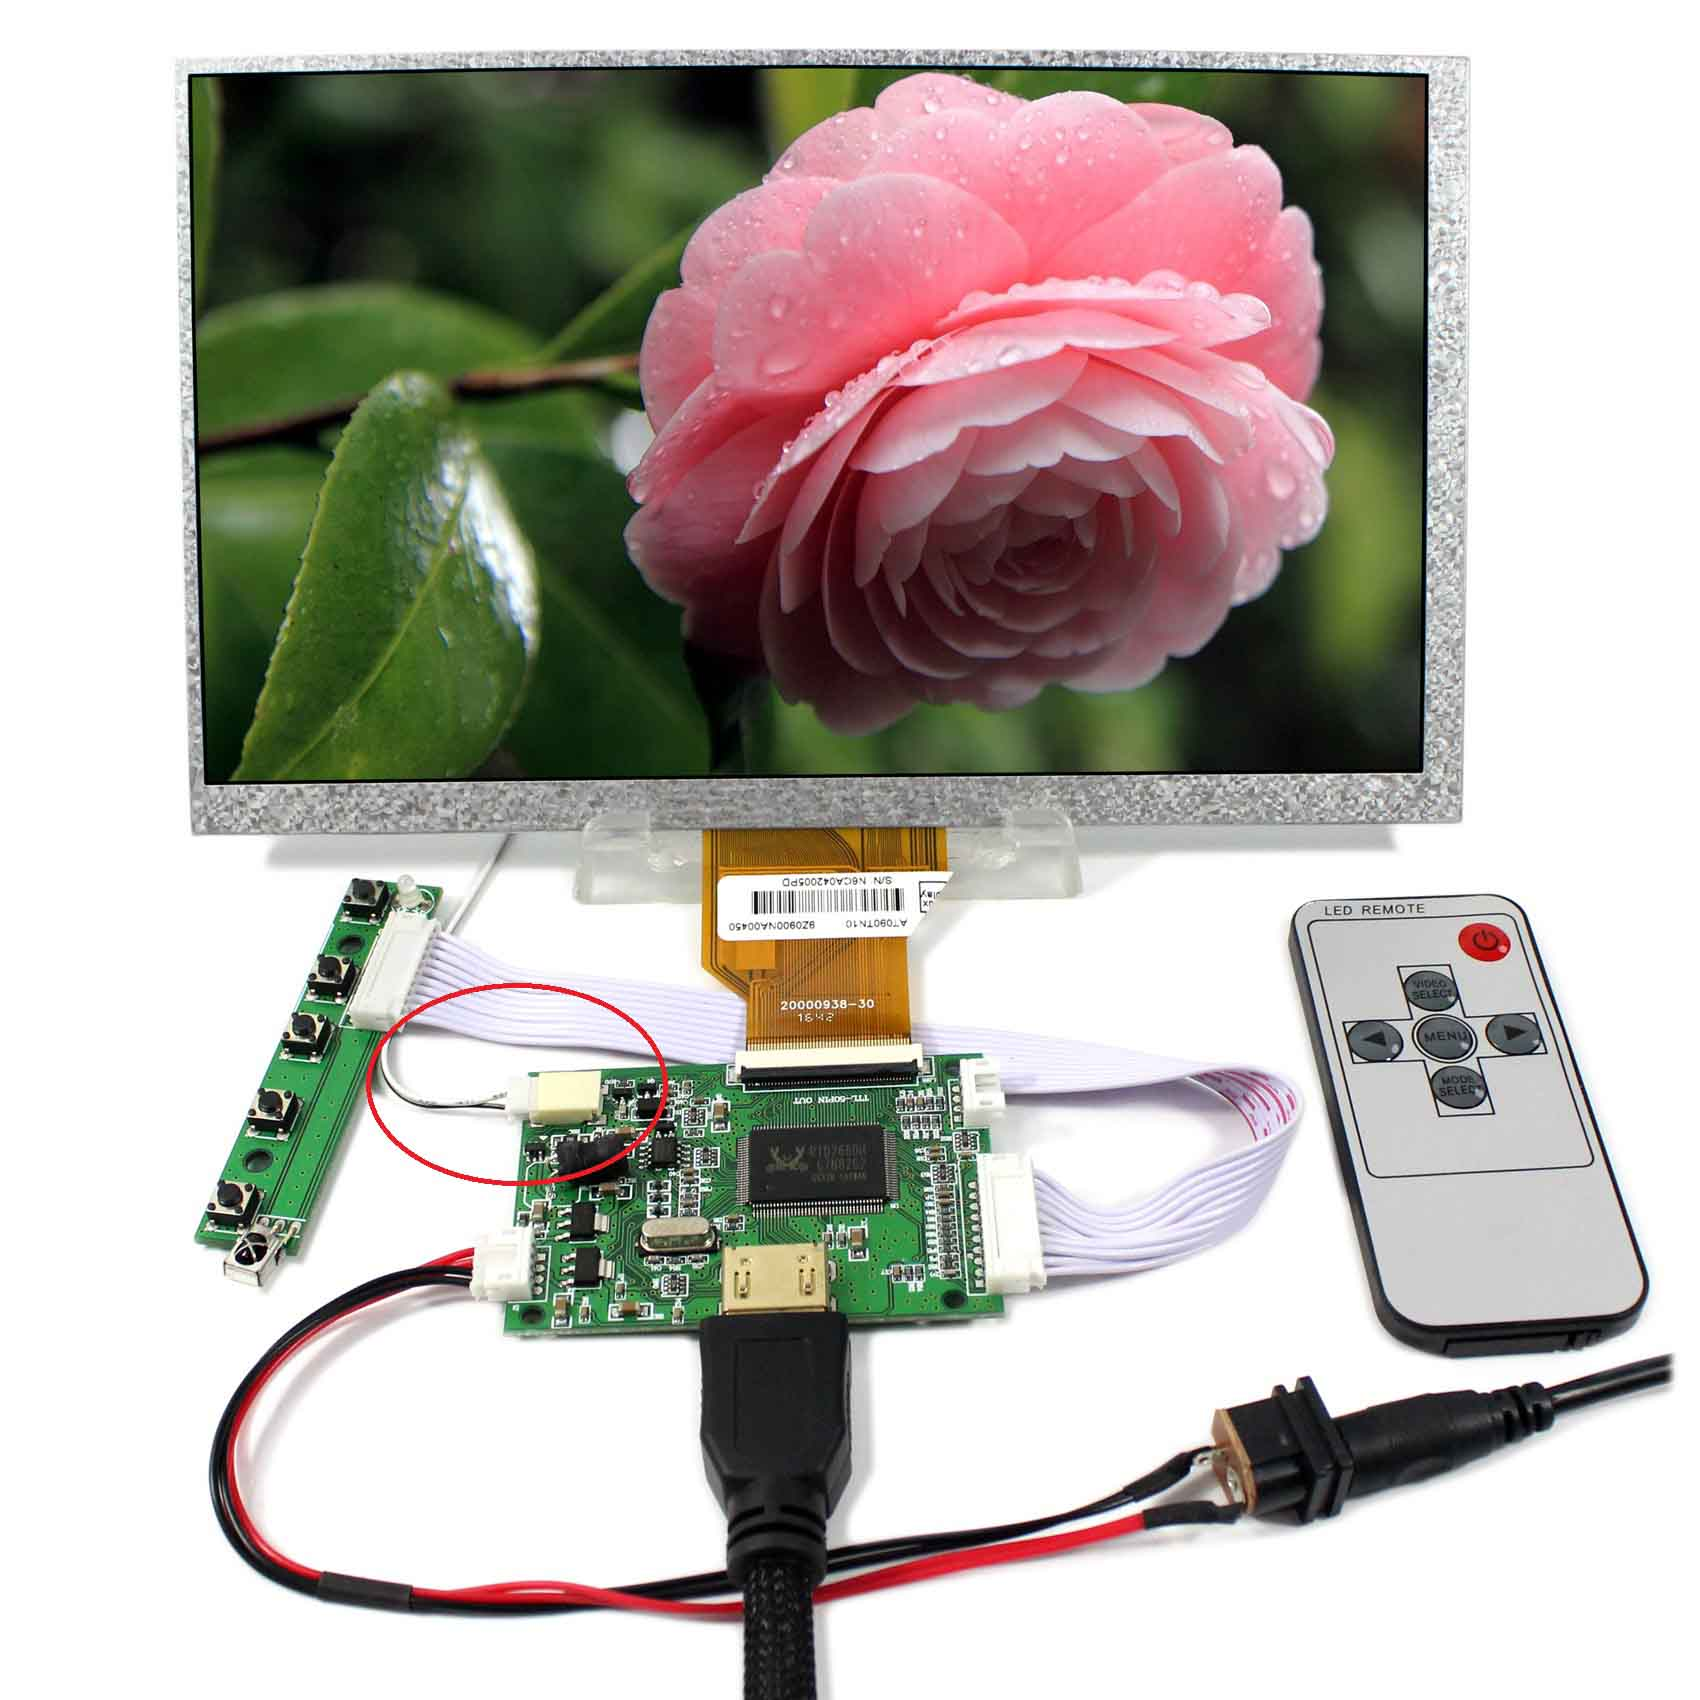 HDMI LCD Controller Board With+9inch 800x480 AT090TN10 LCD ScreenHDMI LCD Controller Board With+9inch 800x480 AT090TN10 LCD Screen